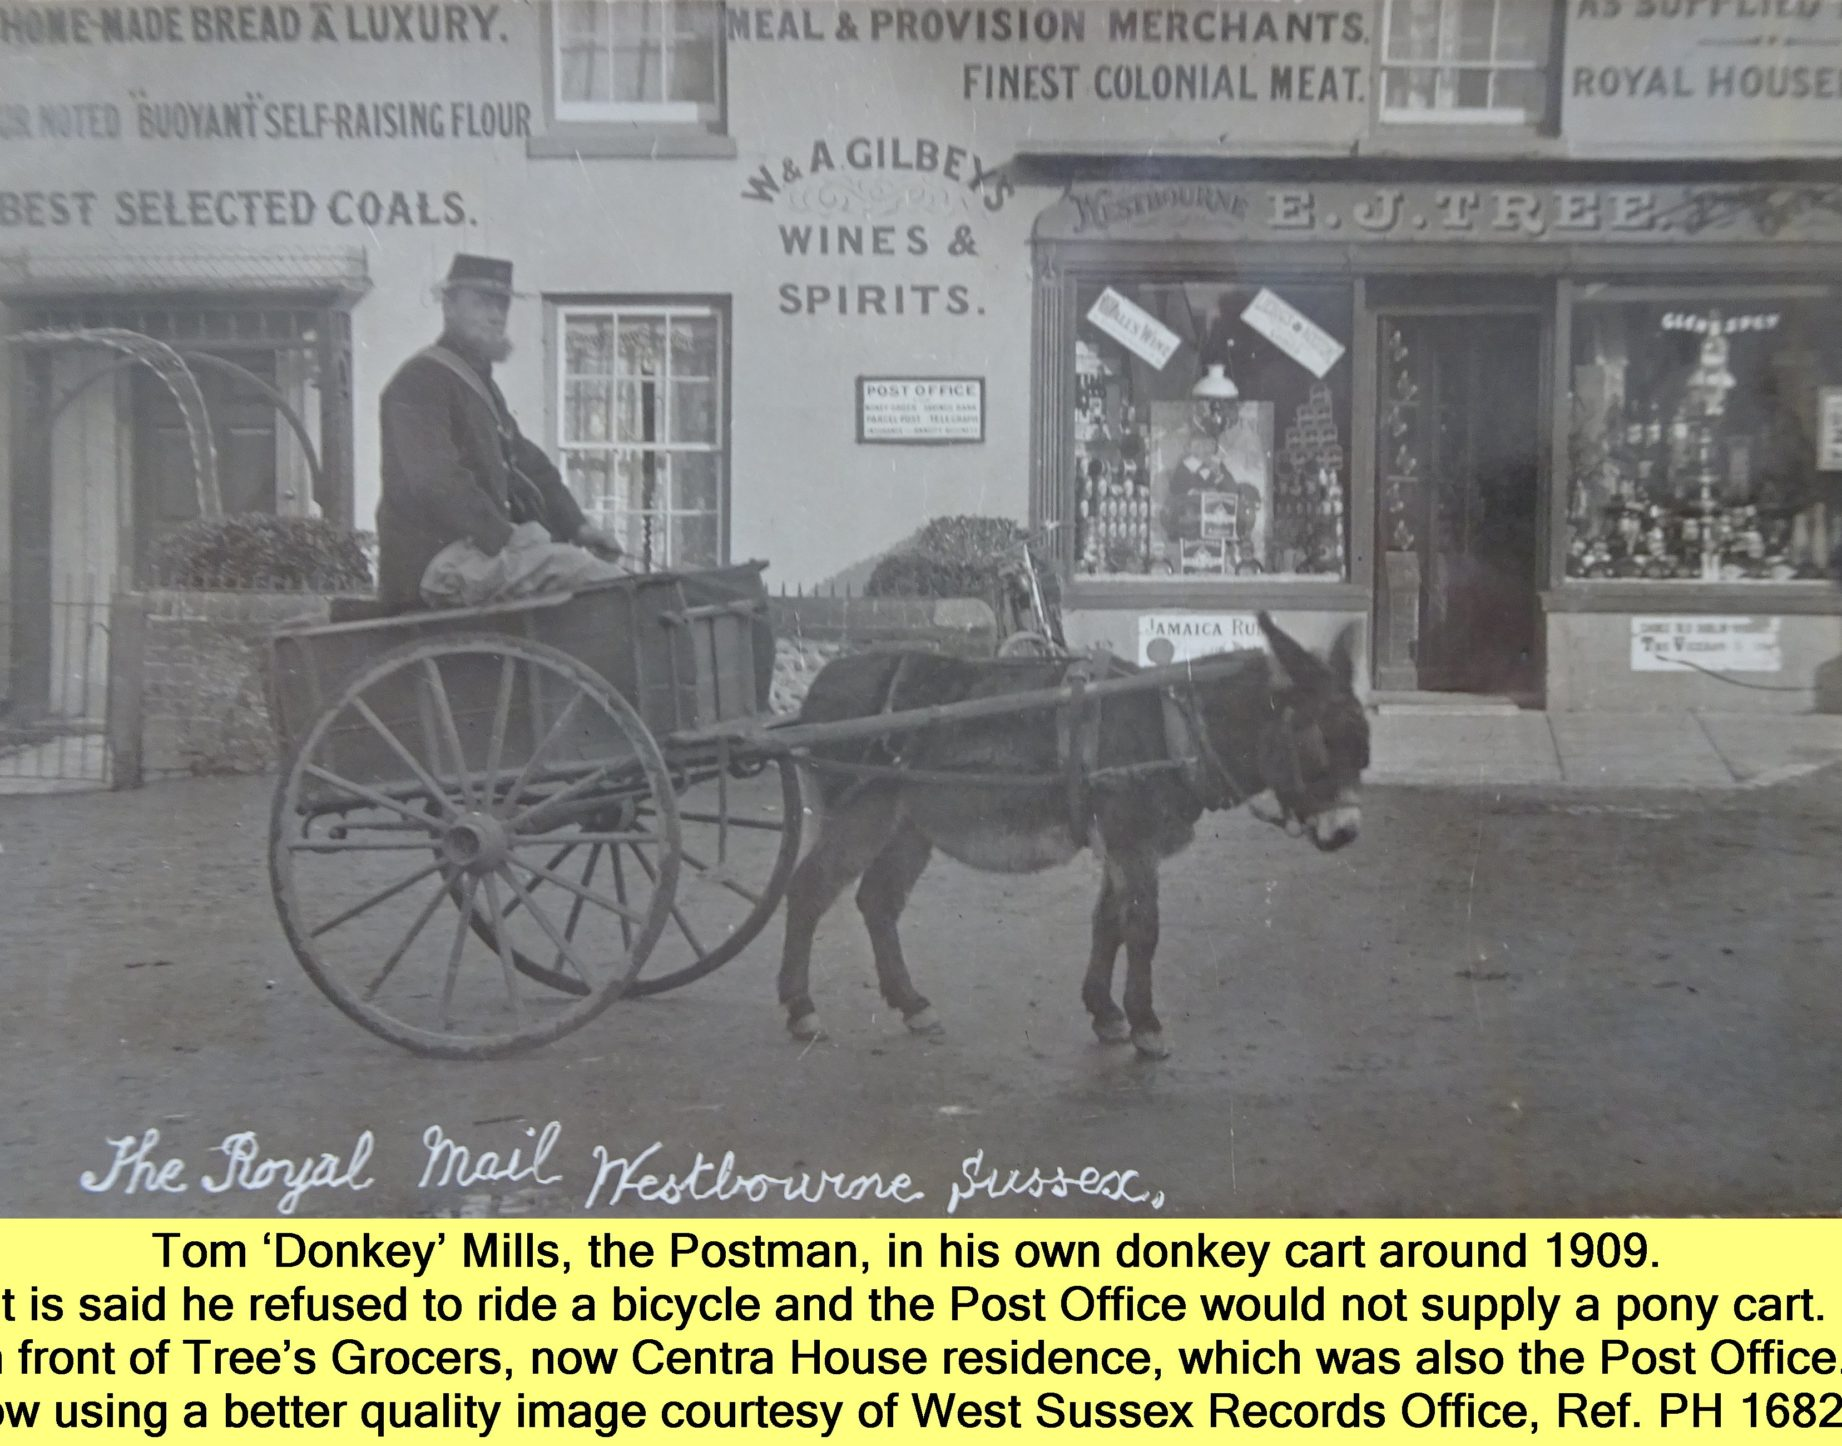 WESTBOURNE HISTORY PHOTO, TOM 'DONKEY' MILLS, POSTMAN, DONKEY CART, TREES GROCER, CENTRA HOUSE, THE SQUARE